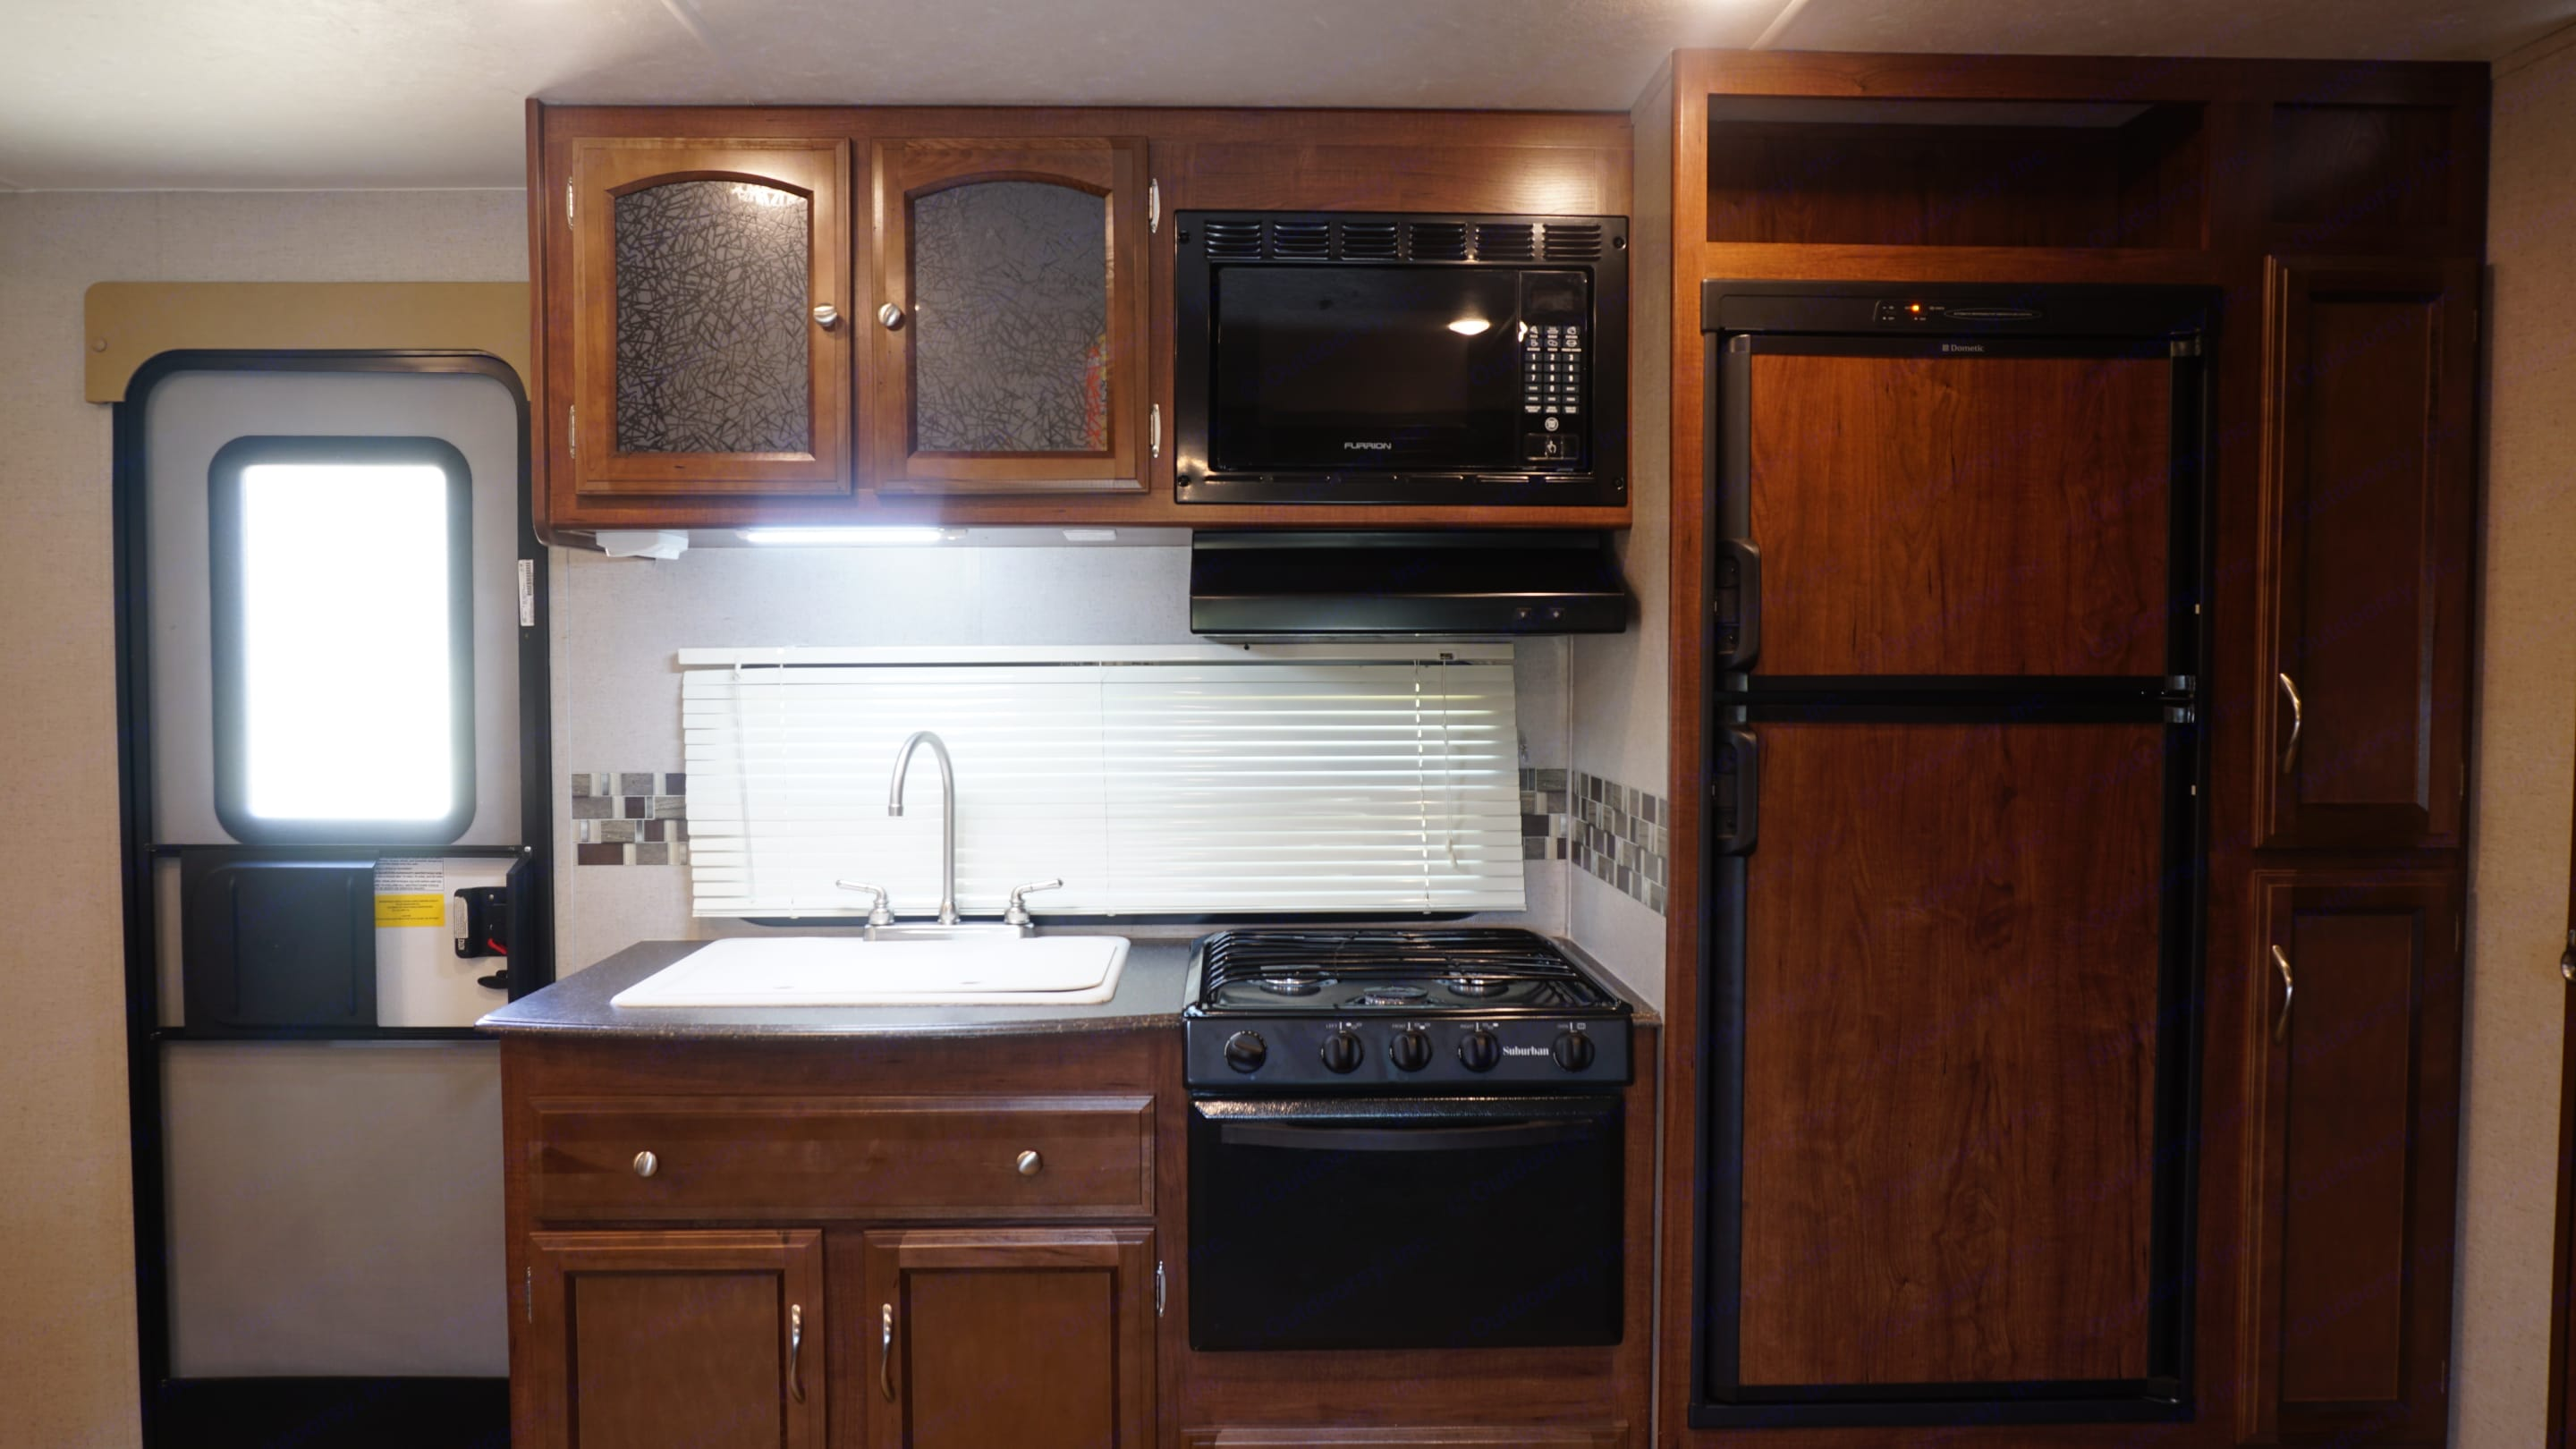 Kitchen with Fridge/Freezer, Stove Top, Oven, Microwave, Sink, and Storage. Coachmen Freedom Express 2016